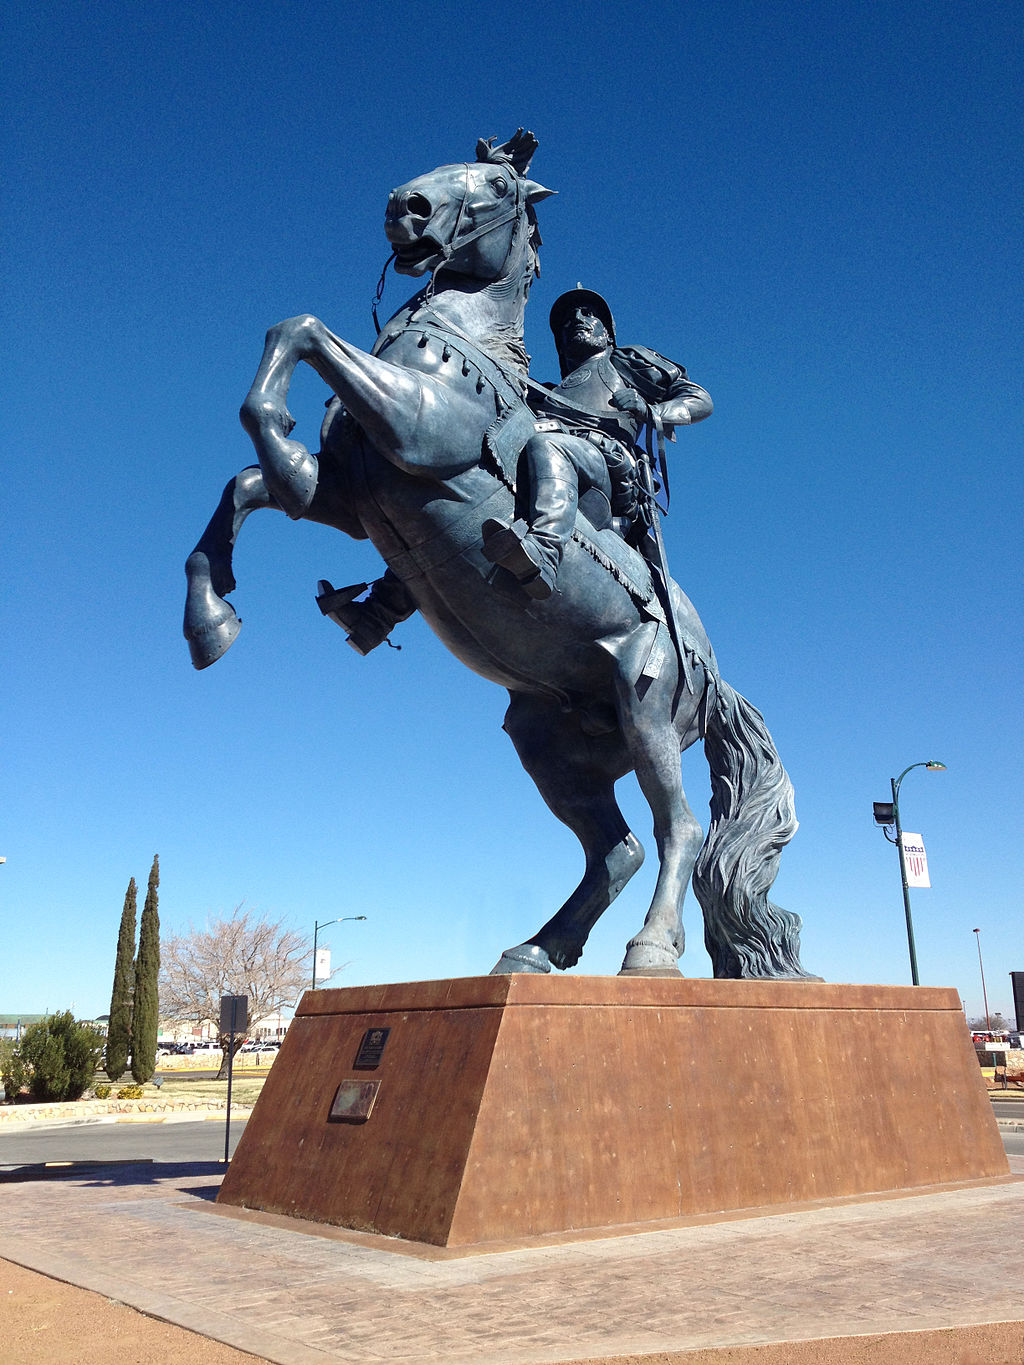 10 Most Controversial Statues And Sculptures In Texas